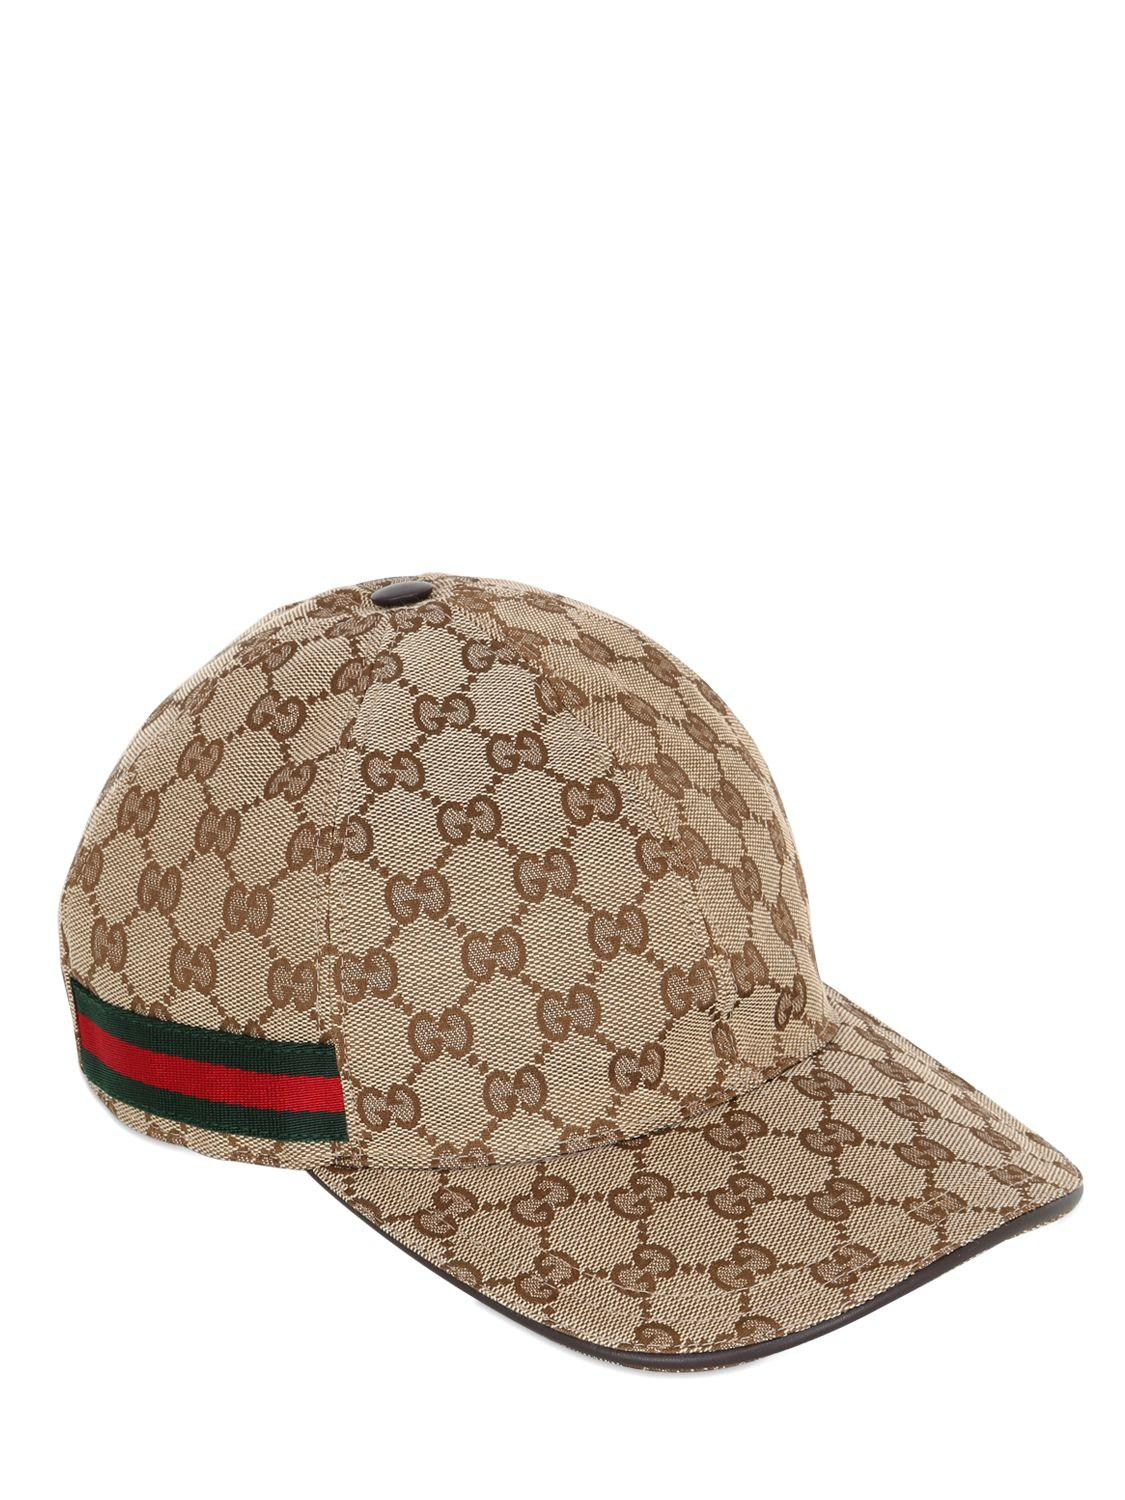 Gucci Beige Original GG Baseball Cap in Natural for Men - Save 17 ... 5aaeaa92bf1